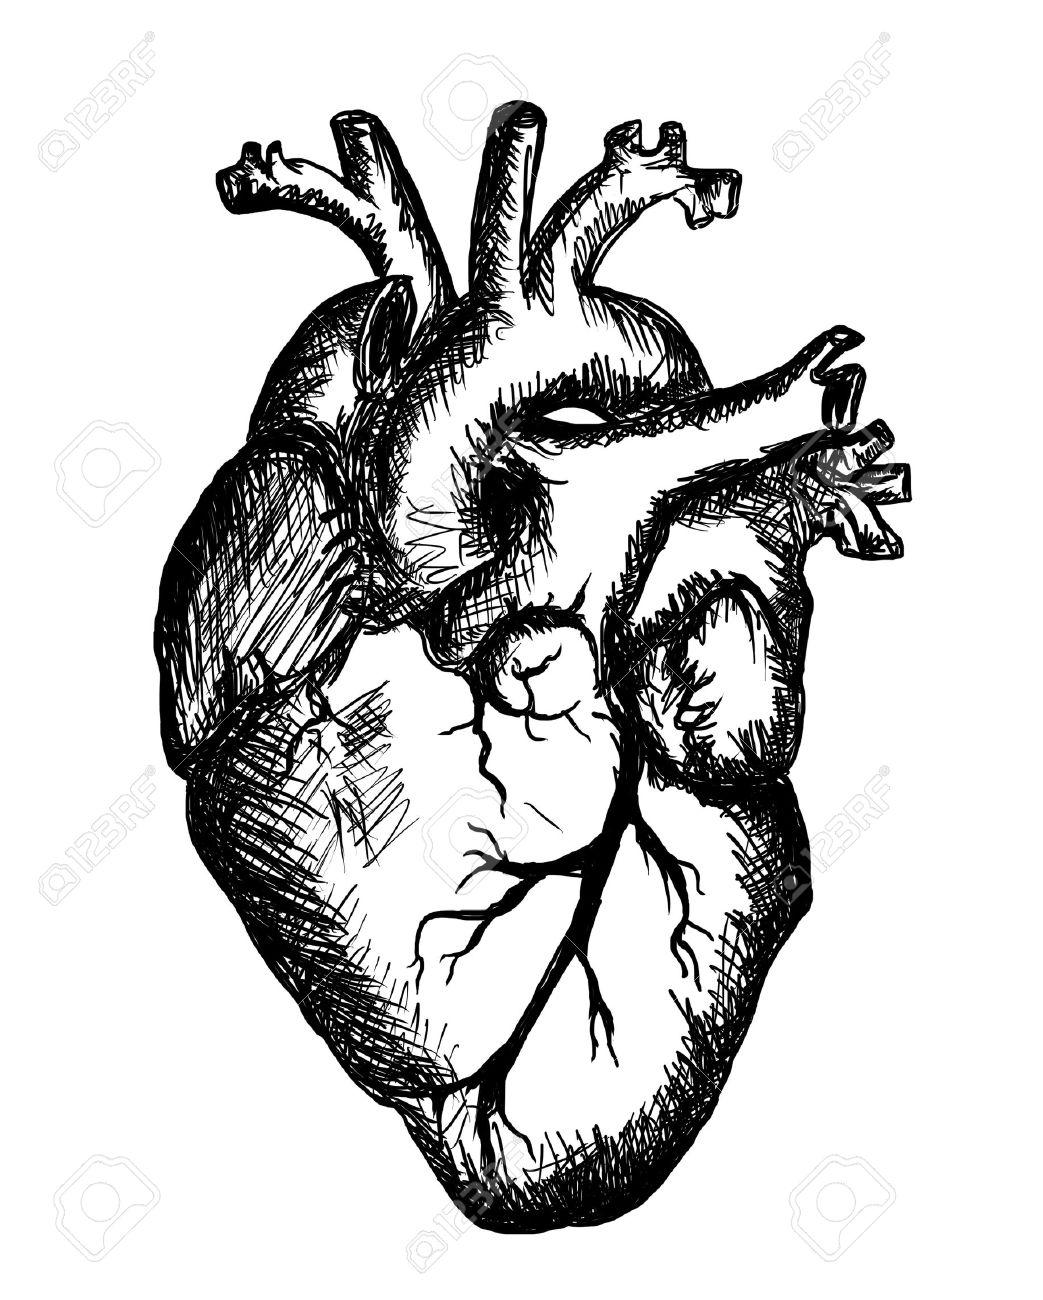 1043x1300 Heart Drawing On White Background Stock Photo, Picture And Royalty